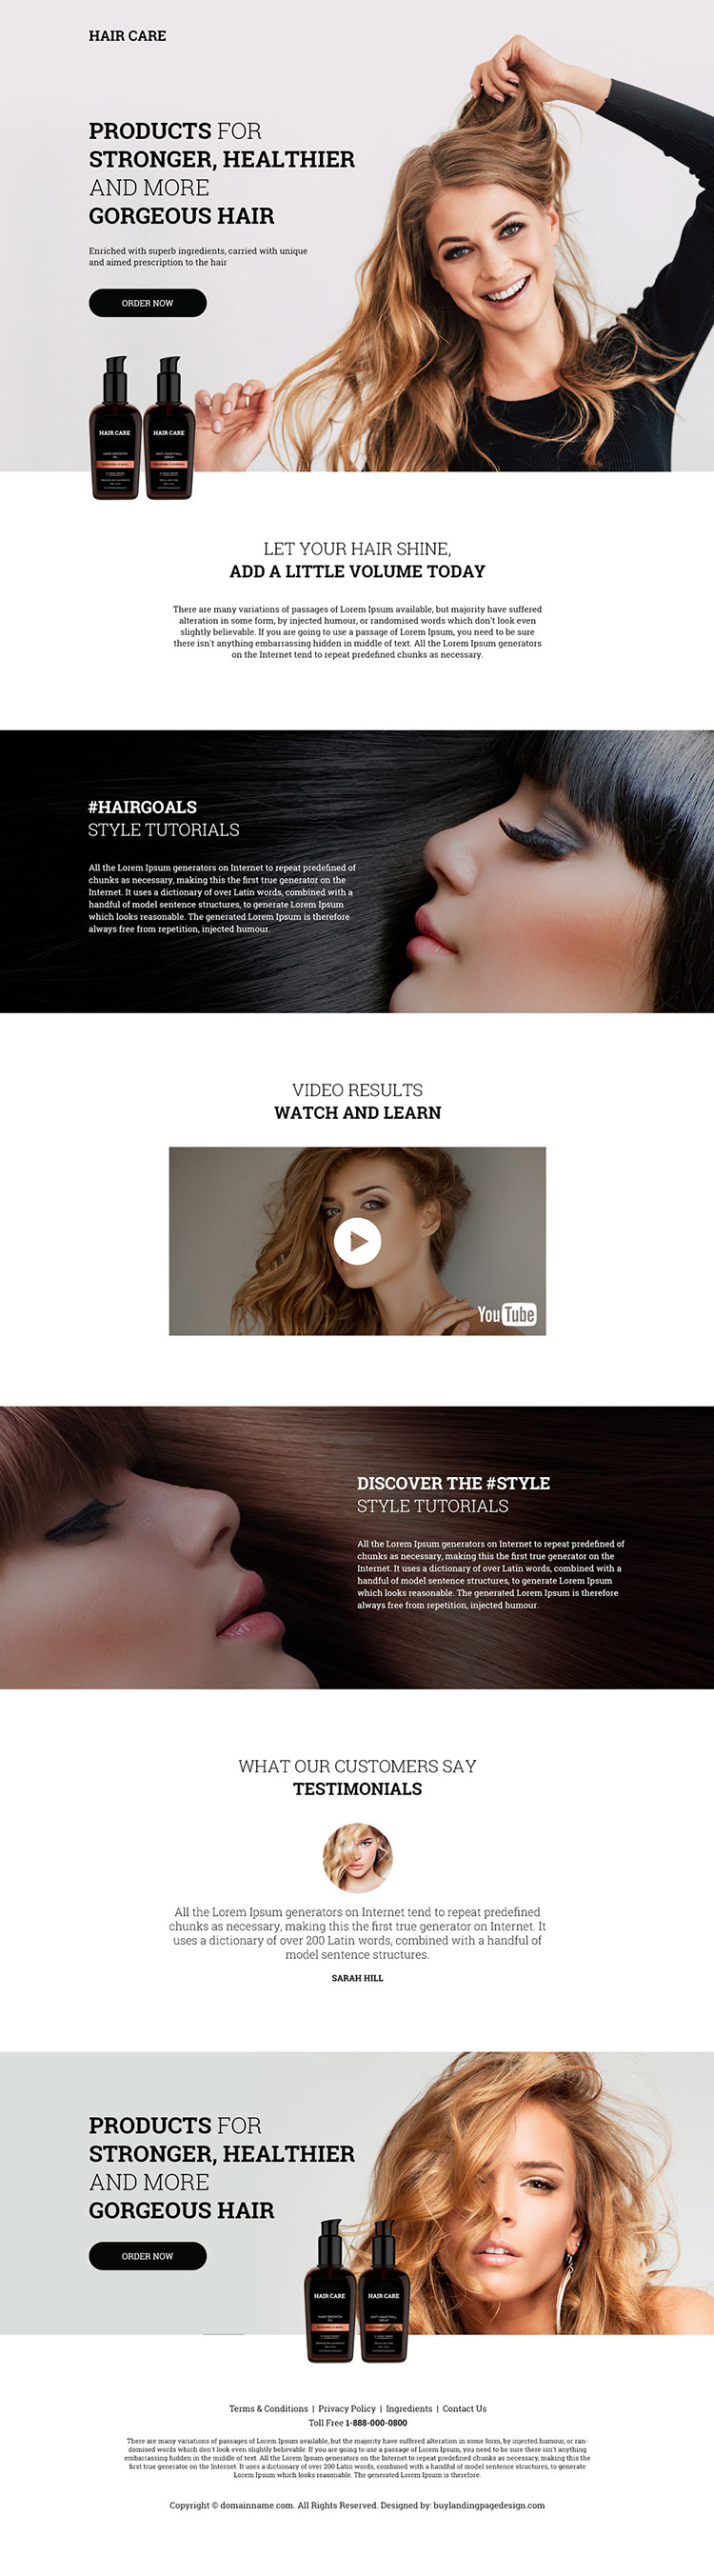 hair care products selling responsive landing page design